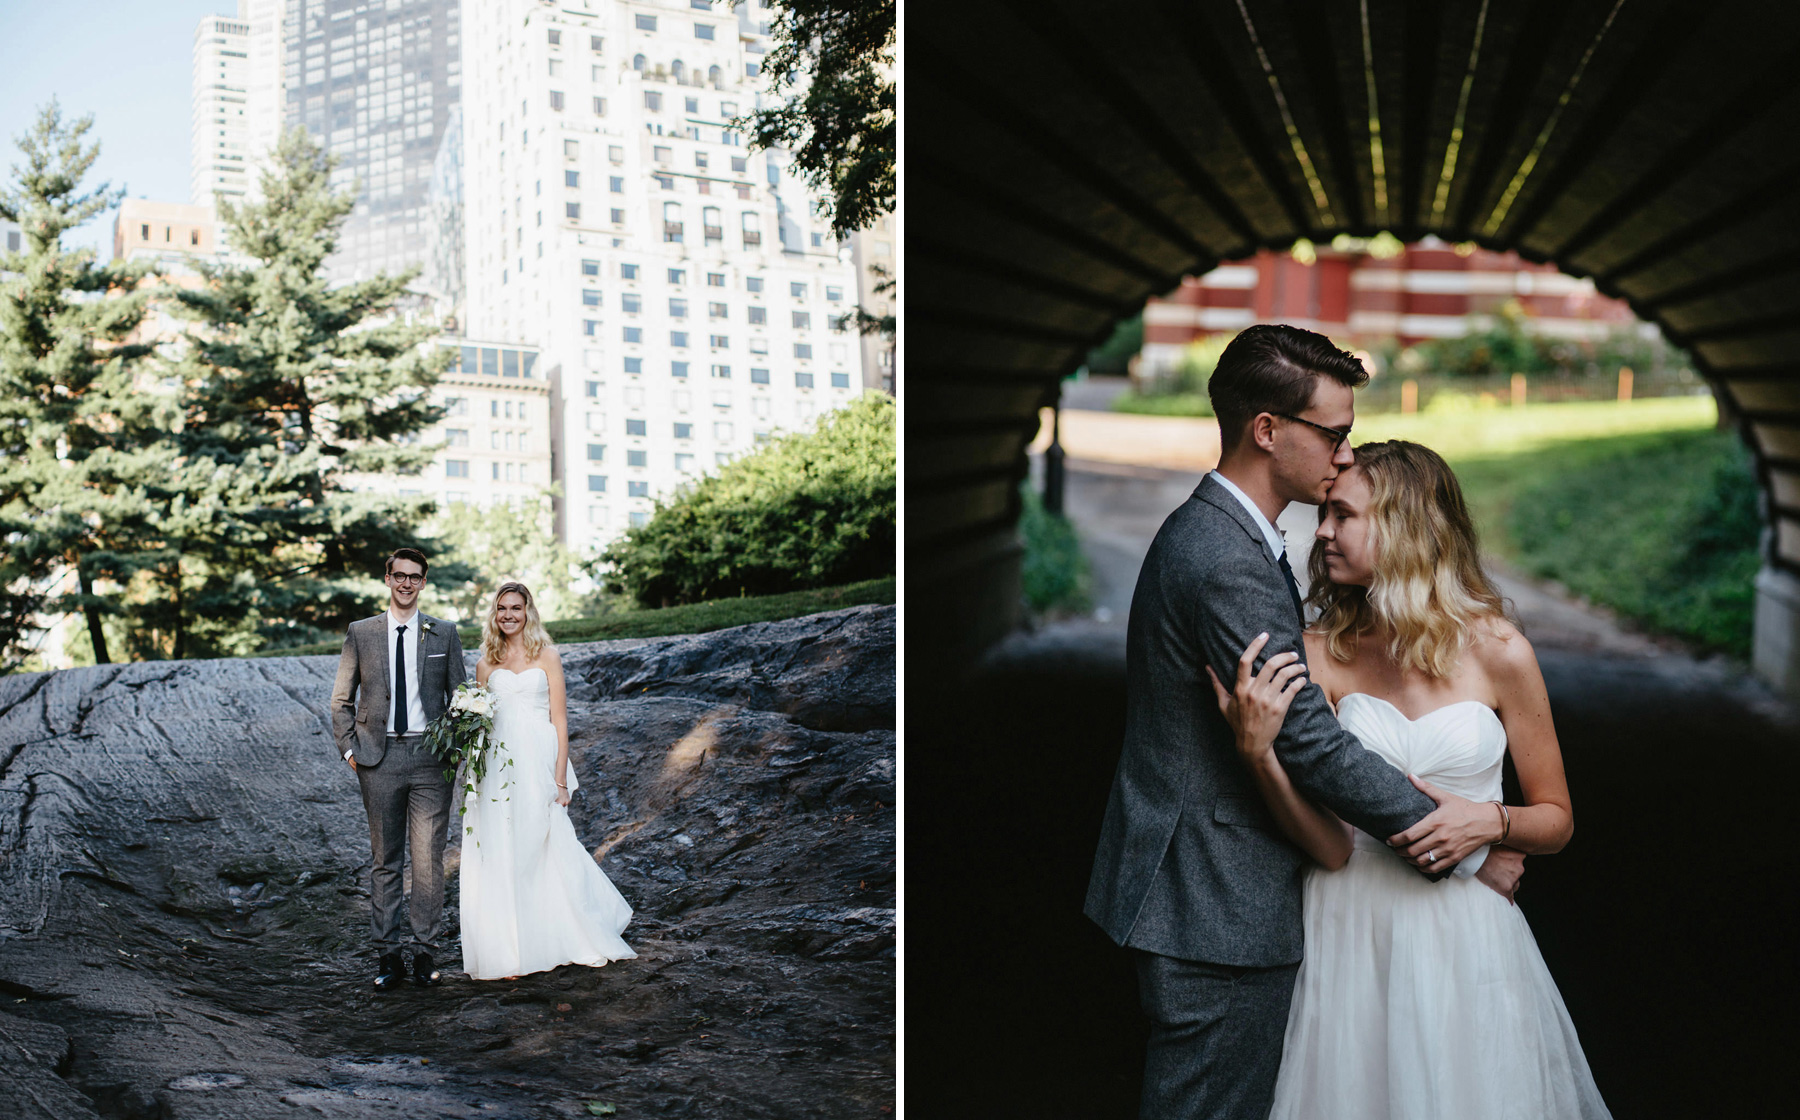 61_Central Park New York City Elopement_Kindling Wedding Photography.JPG